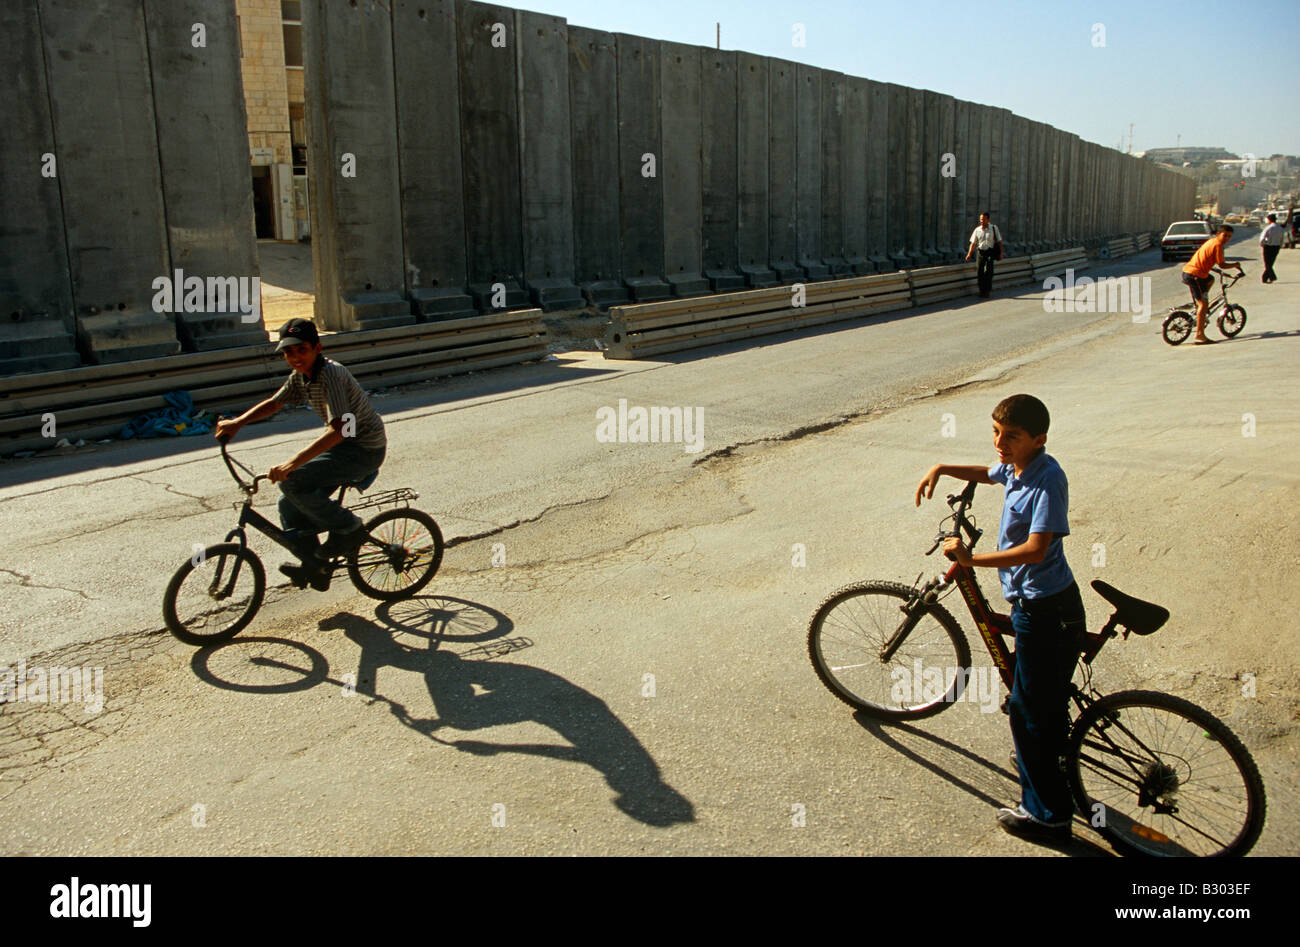 Boys playing on bicycles by the Israeli West Bank barrier, West Bank, Palestine, Middle East - Stock Image